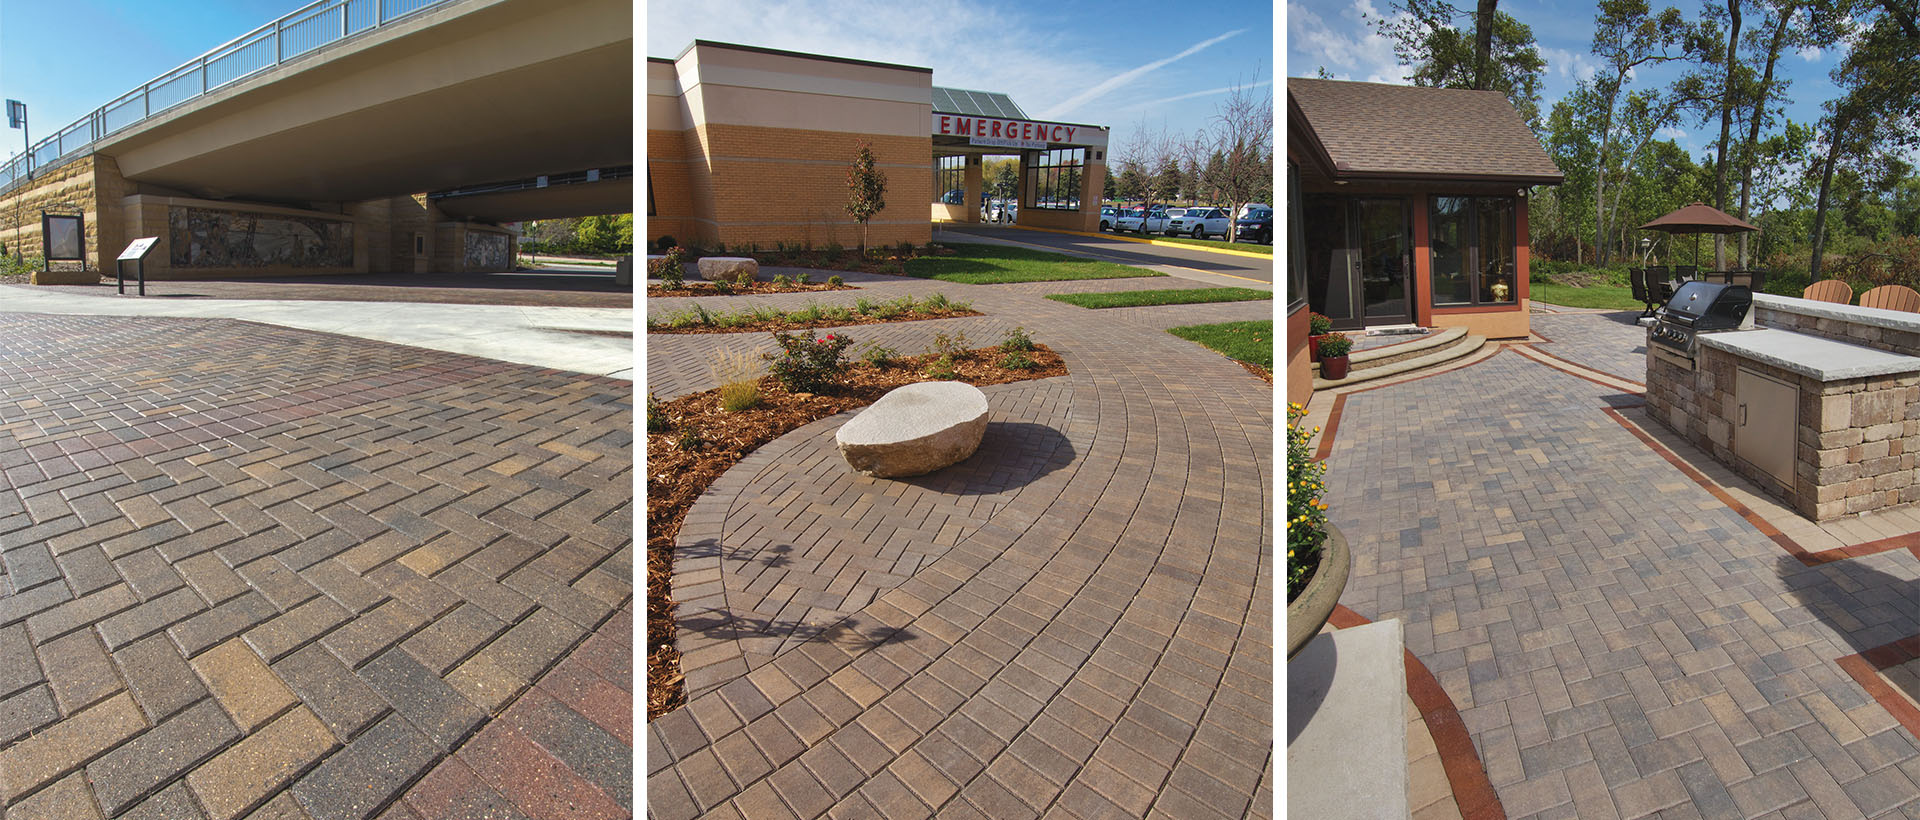 Interlock's Holland is larger than typical Holland pavers. They have a smooth tops, beveled edges and small auto-spacers. Popular for patios, paths, pool decks, drives, and borders and insets.